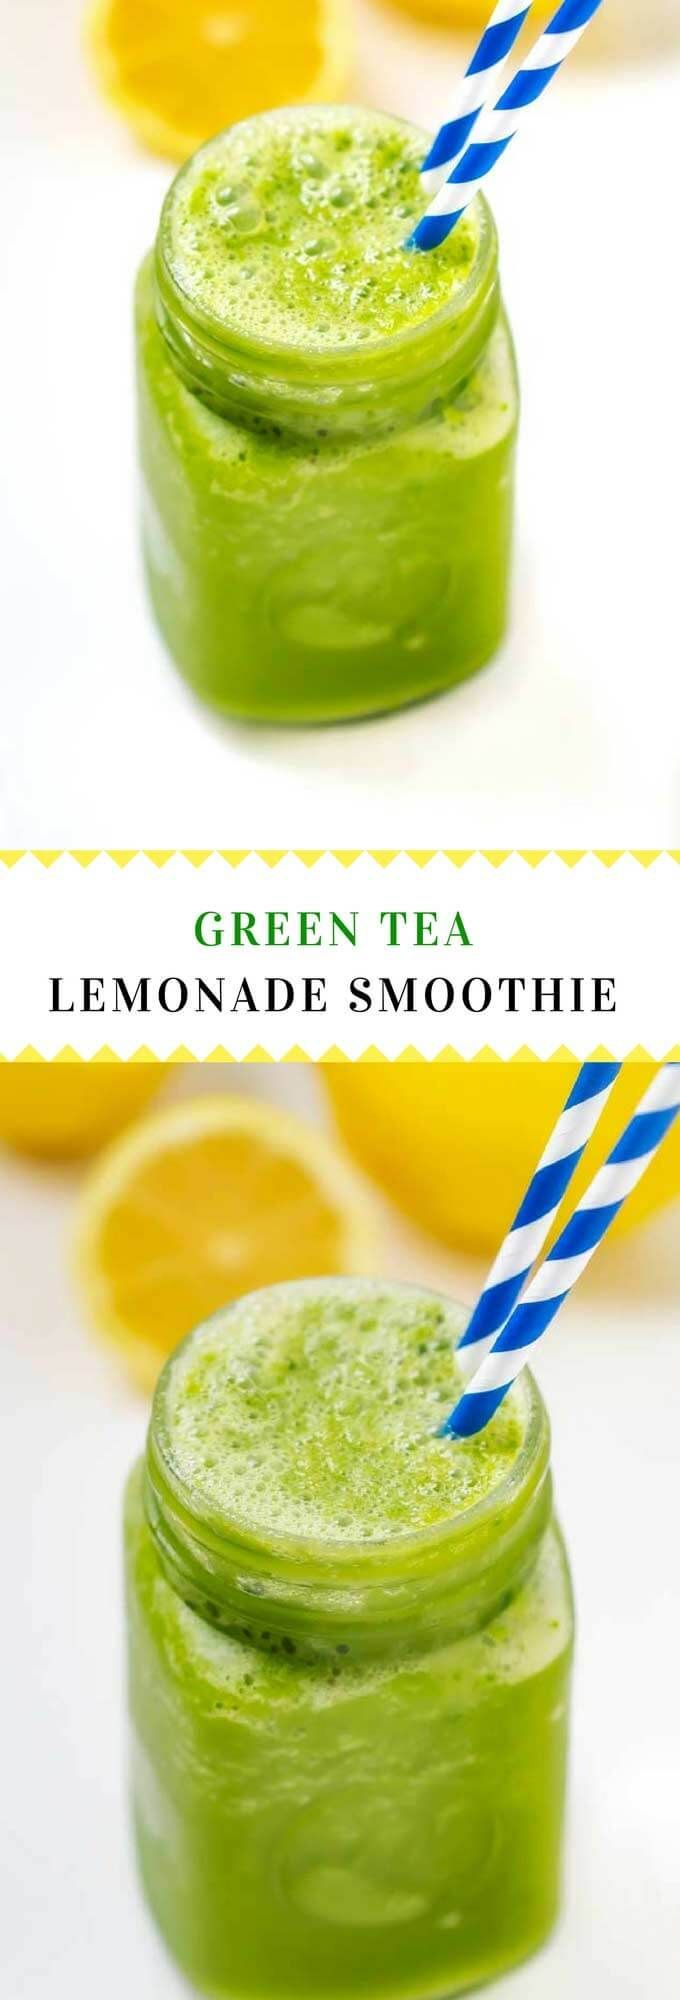 This Green Tea Lemonade Smoothie has a secret ingredient that will help improve your focus!  #ad #INVIAlife #smoothie #GreenSmoothies